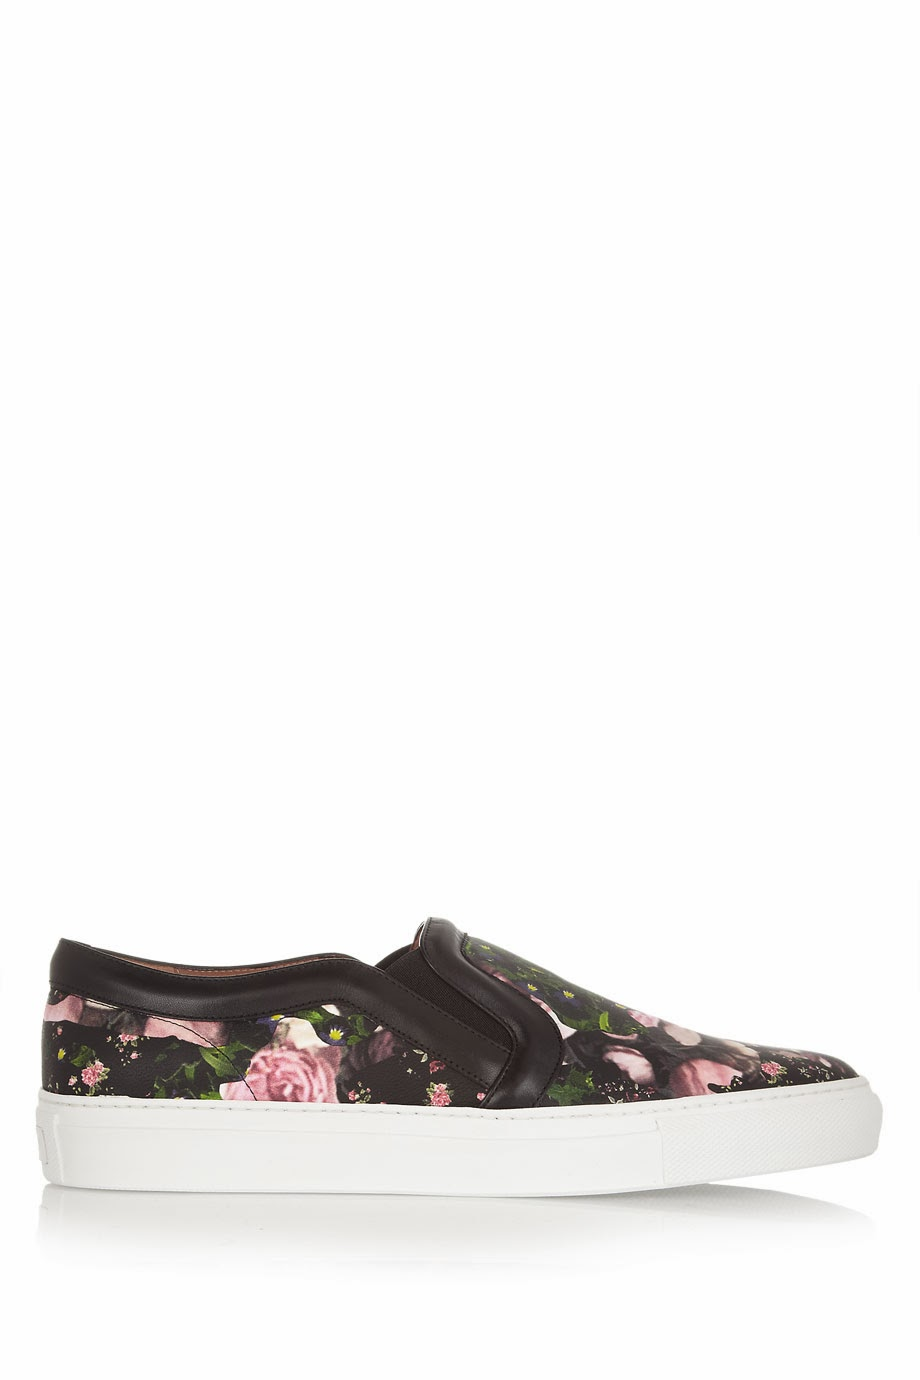 0d1fc6a65a givenchy floral print nappa leather ballet flats